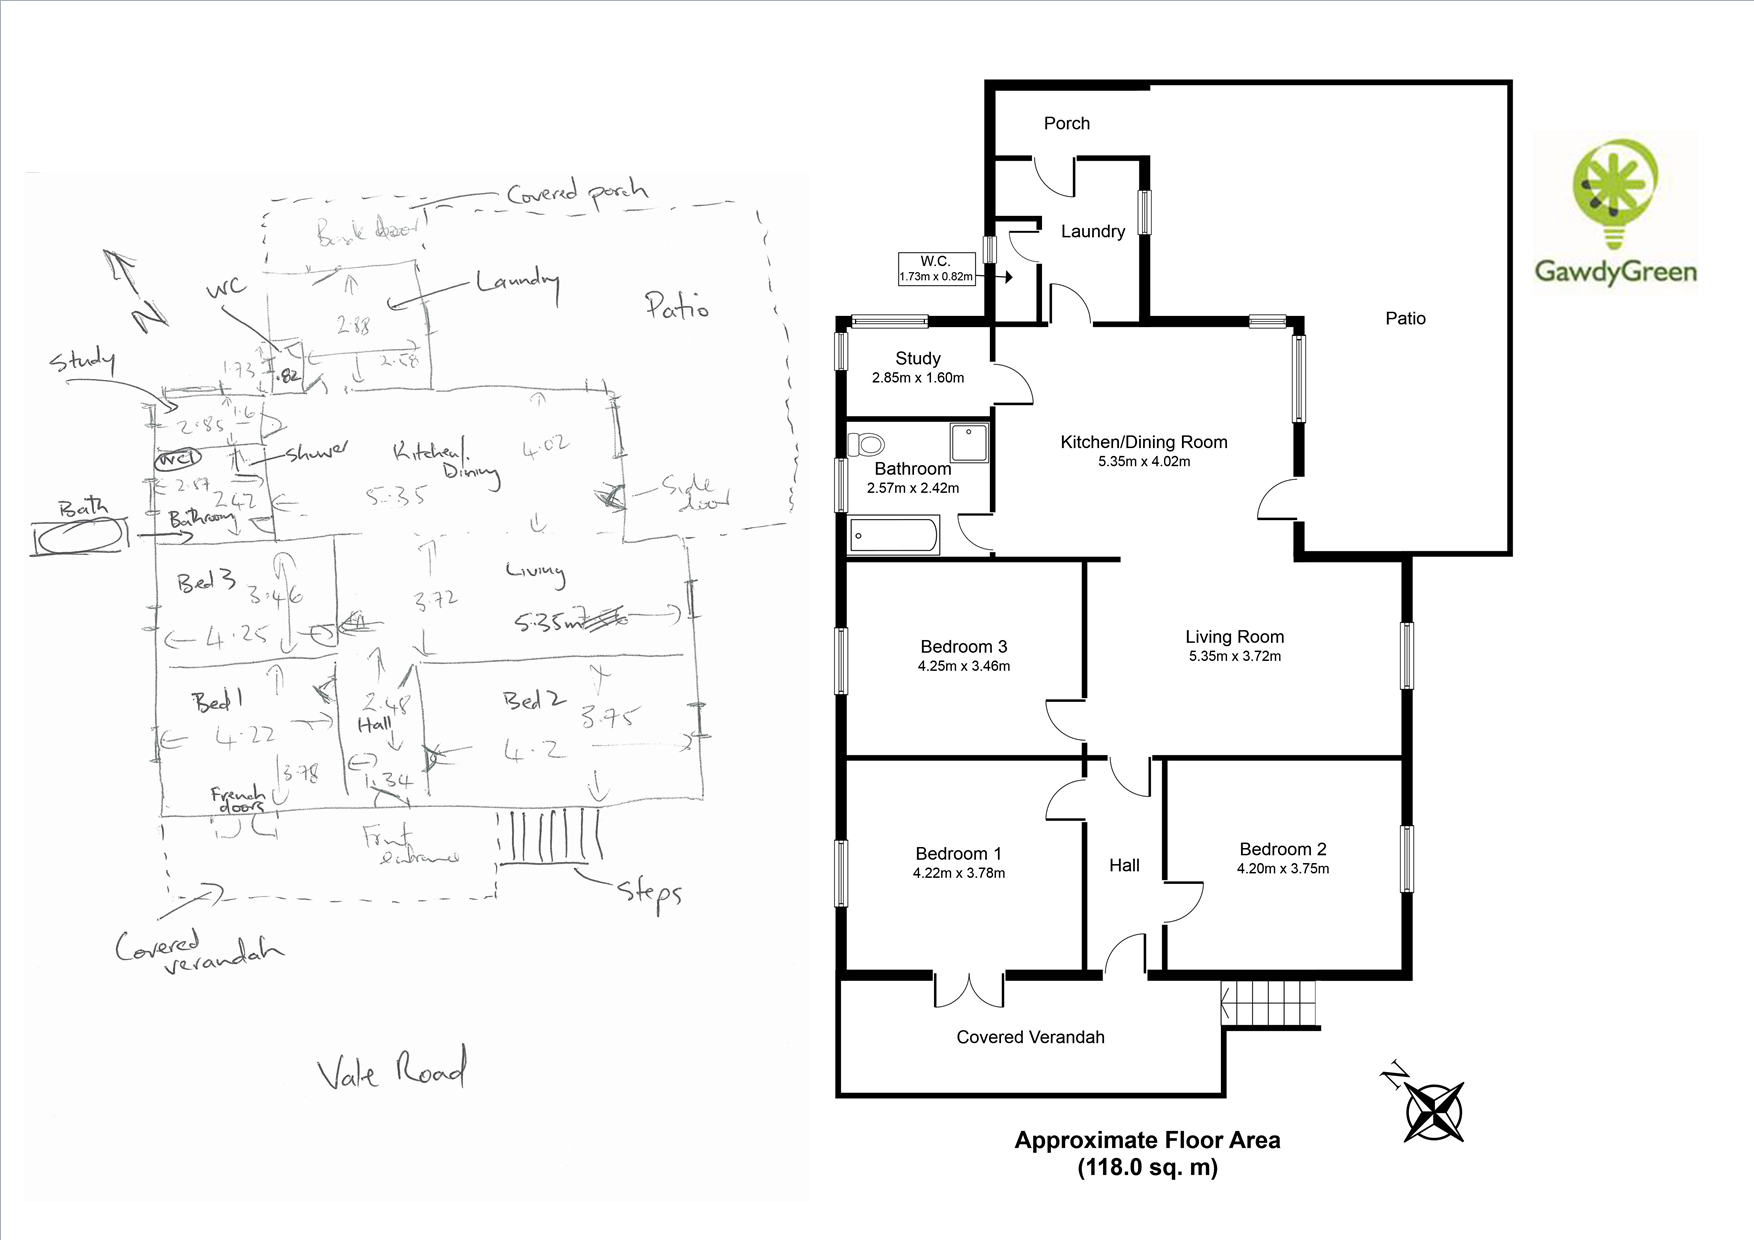 Real Estate Floor Plan Questions Gawdy Green Whangarei